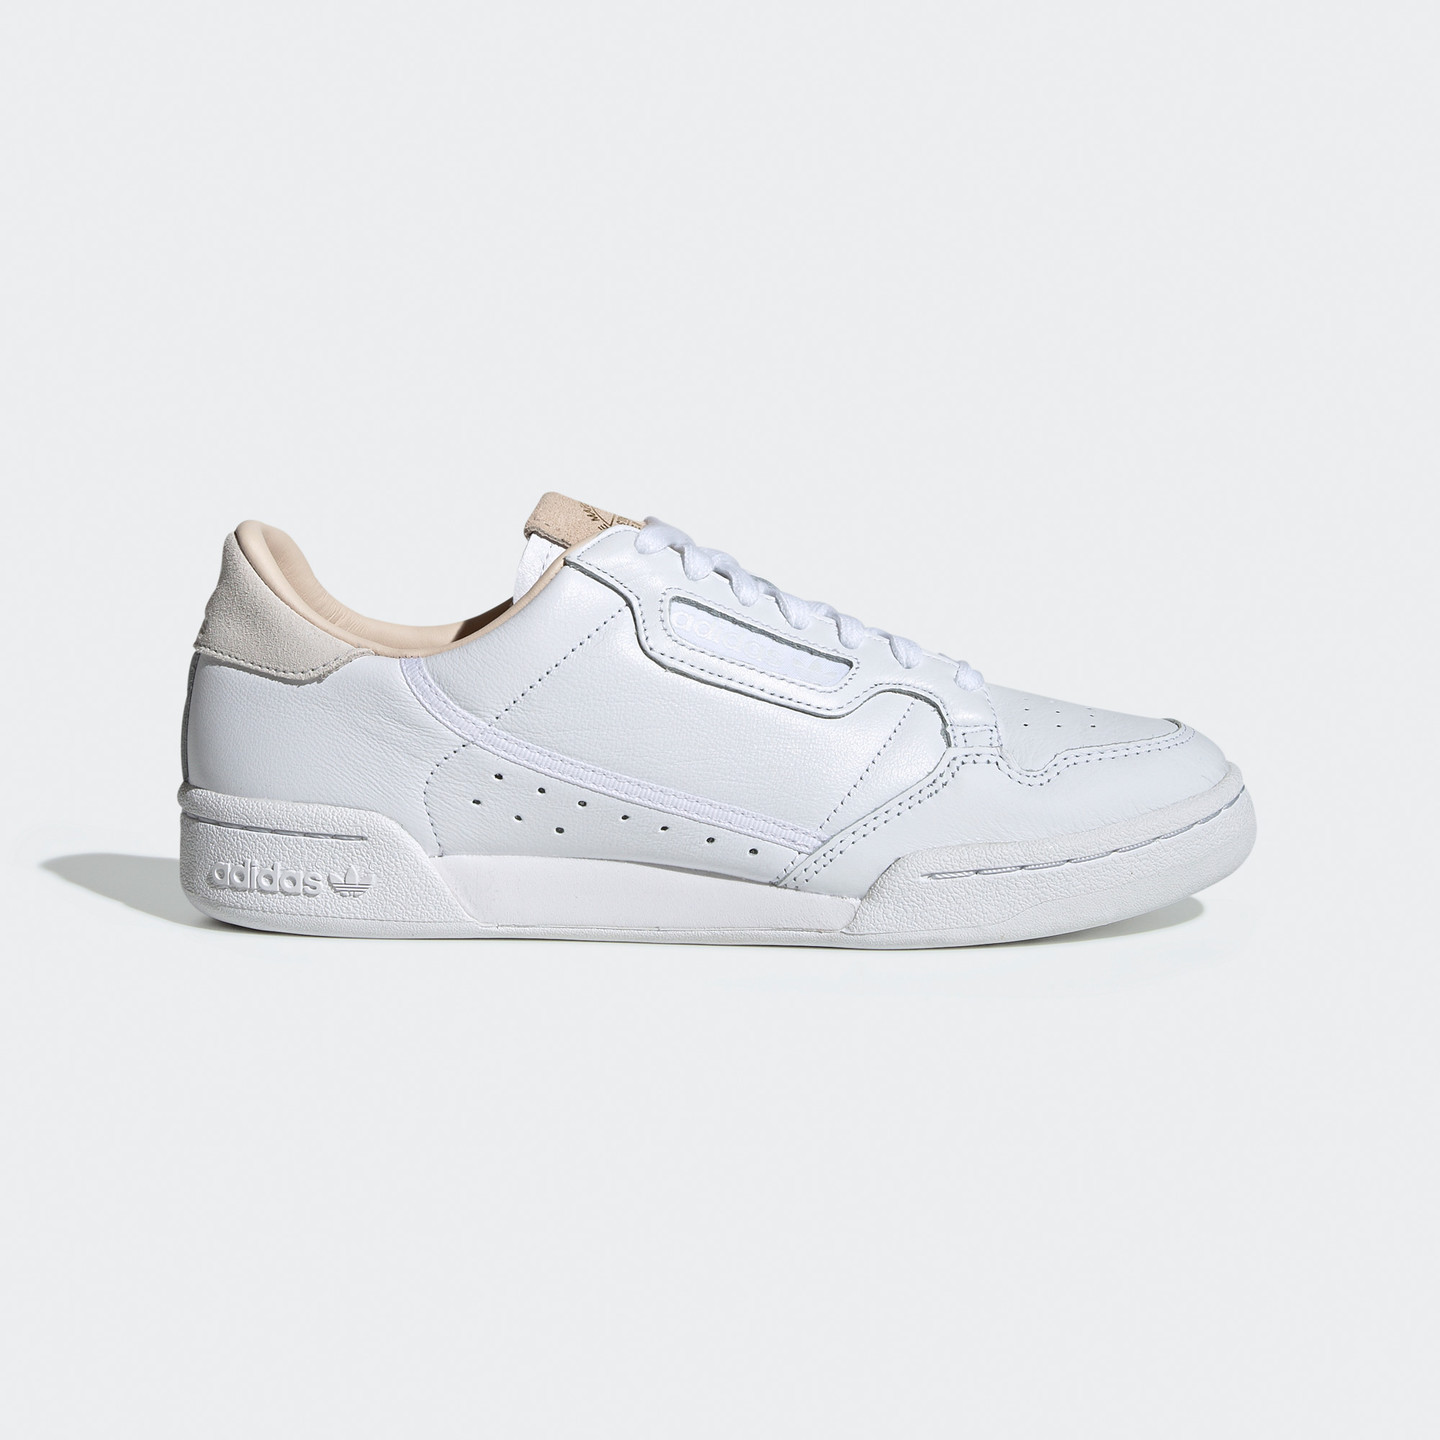 Adidas Continental 80 'Home of Classics' Cloud White / Crystal White EF2101